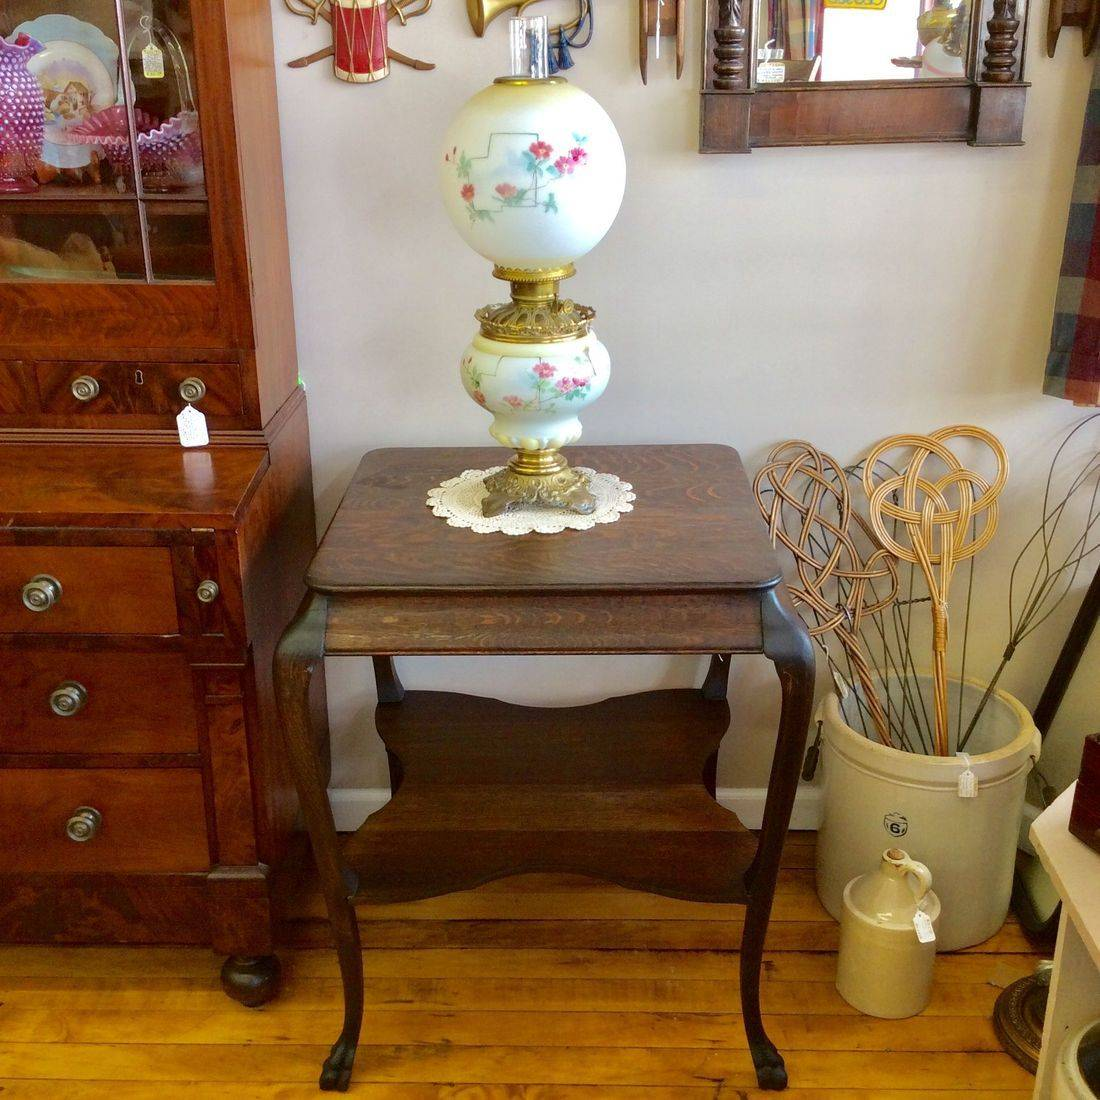 "Early 1900's Oak Parlor Table w/Shelf & Claw Feet  26-1/2""W x 26-1/2""D x 30-1/4""H.  $95.00"